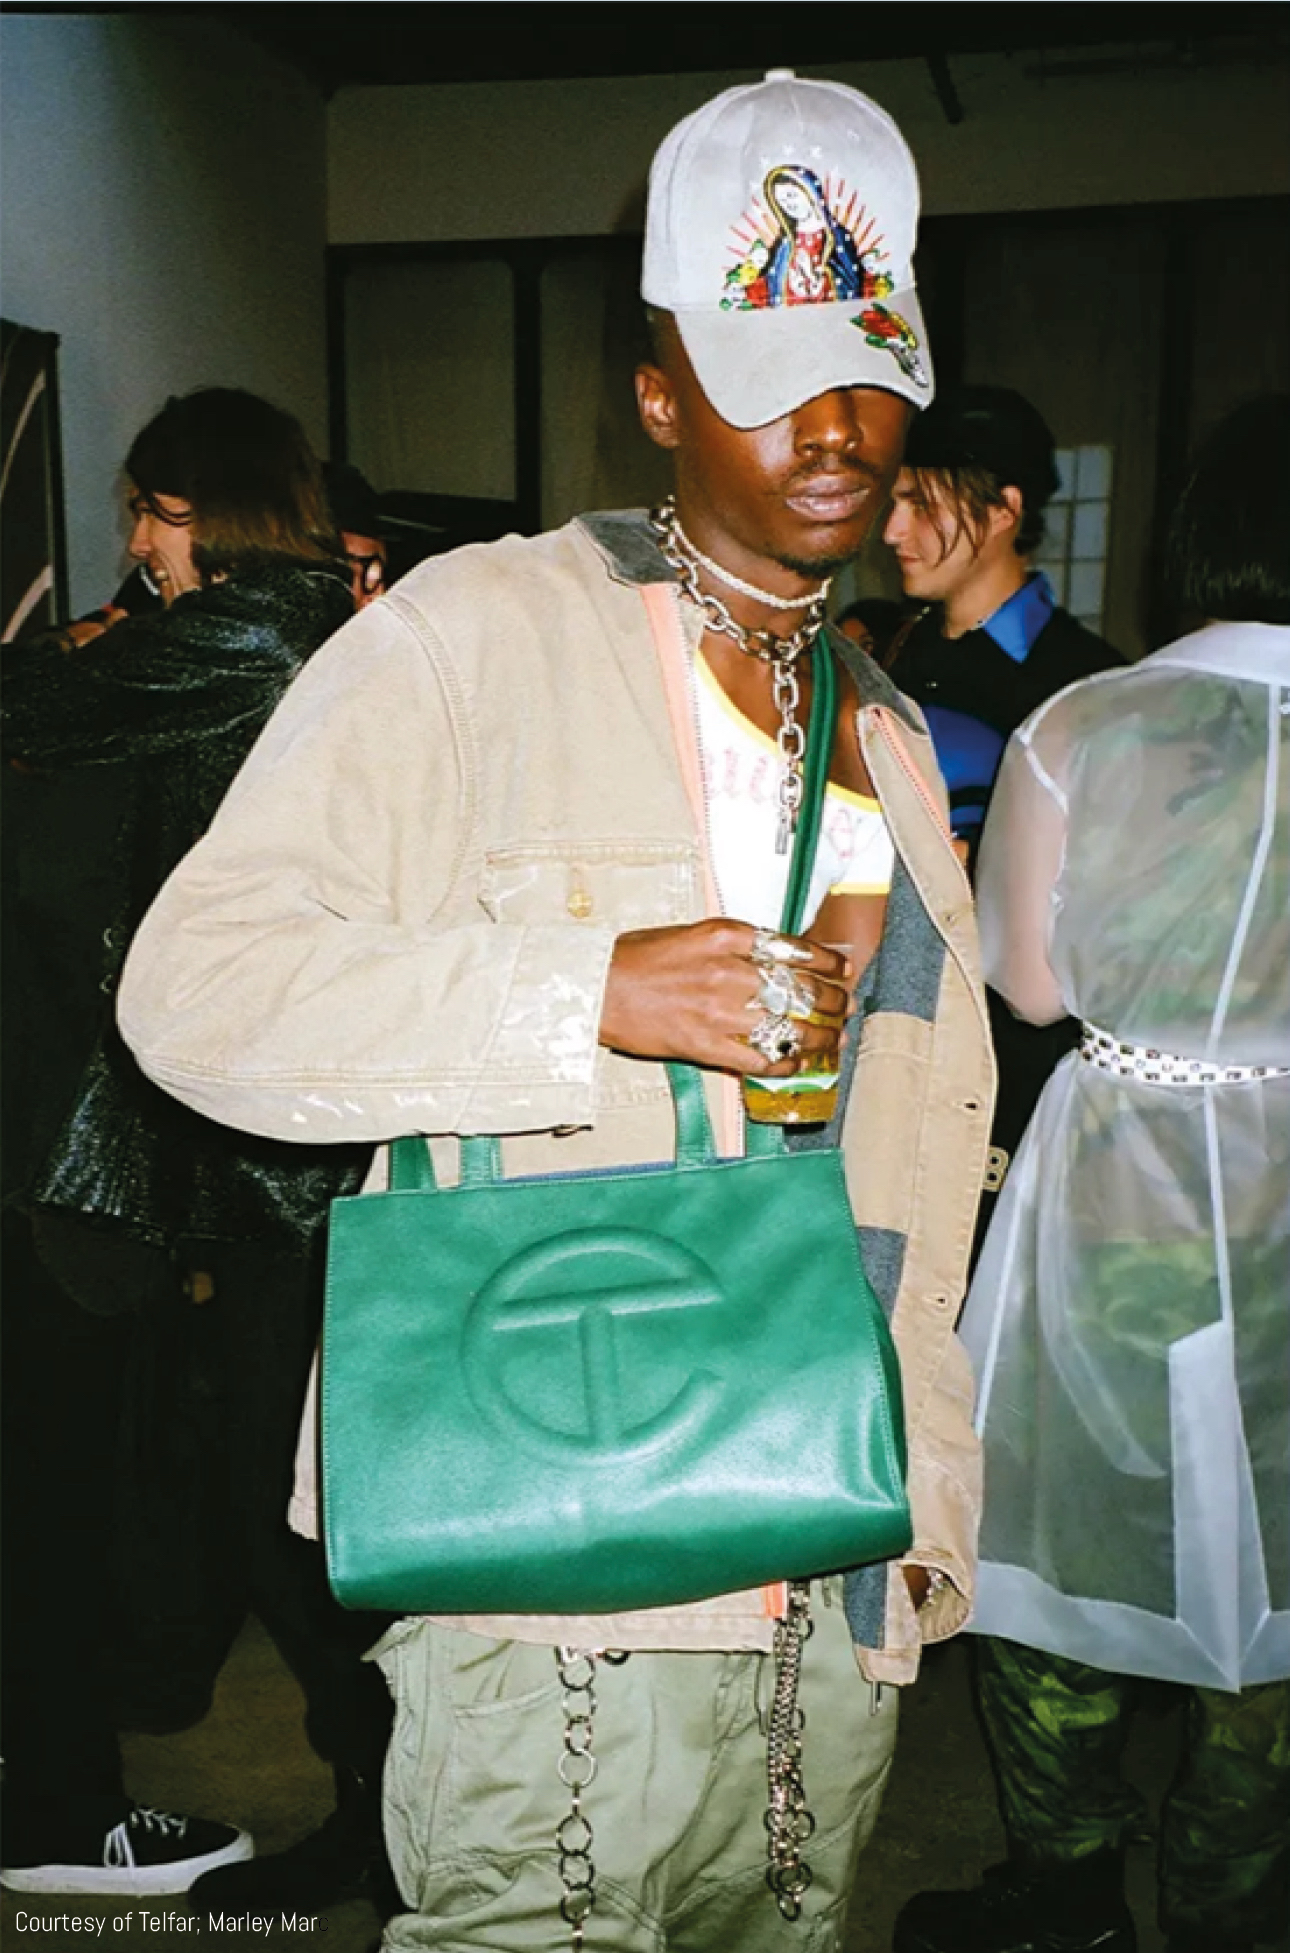 Model poses with green medium Telfar shopping bag